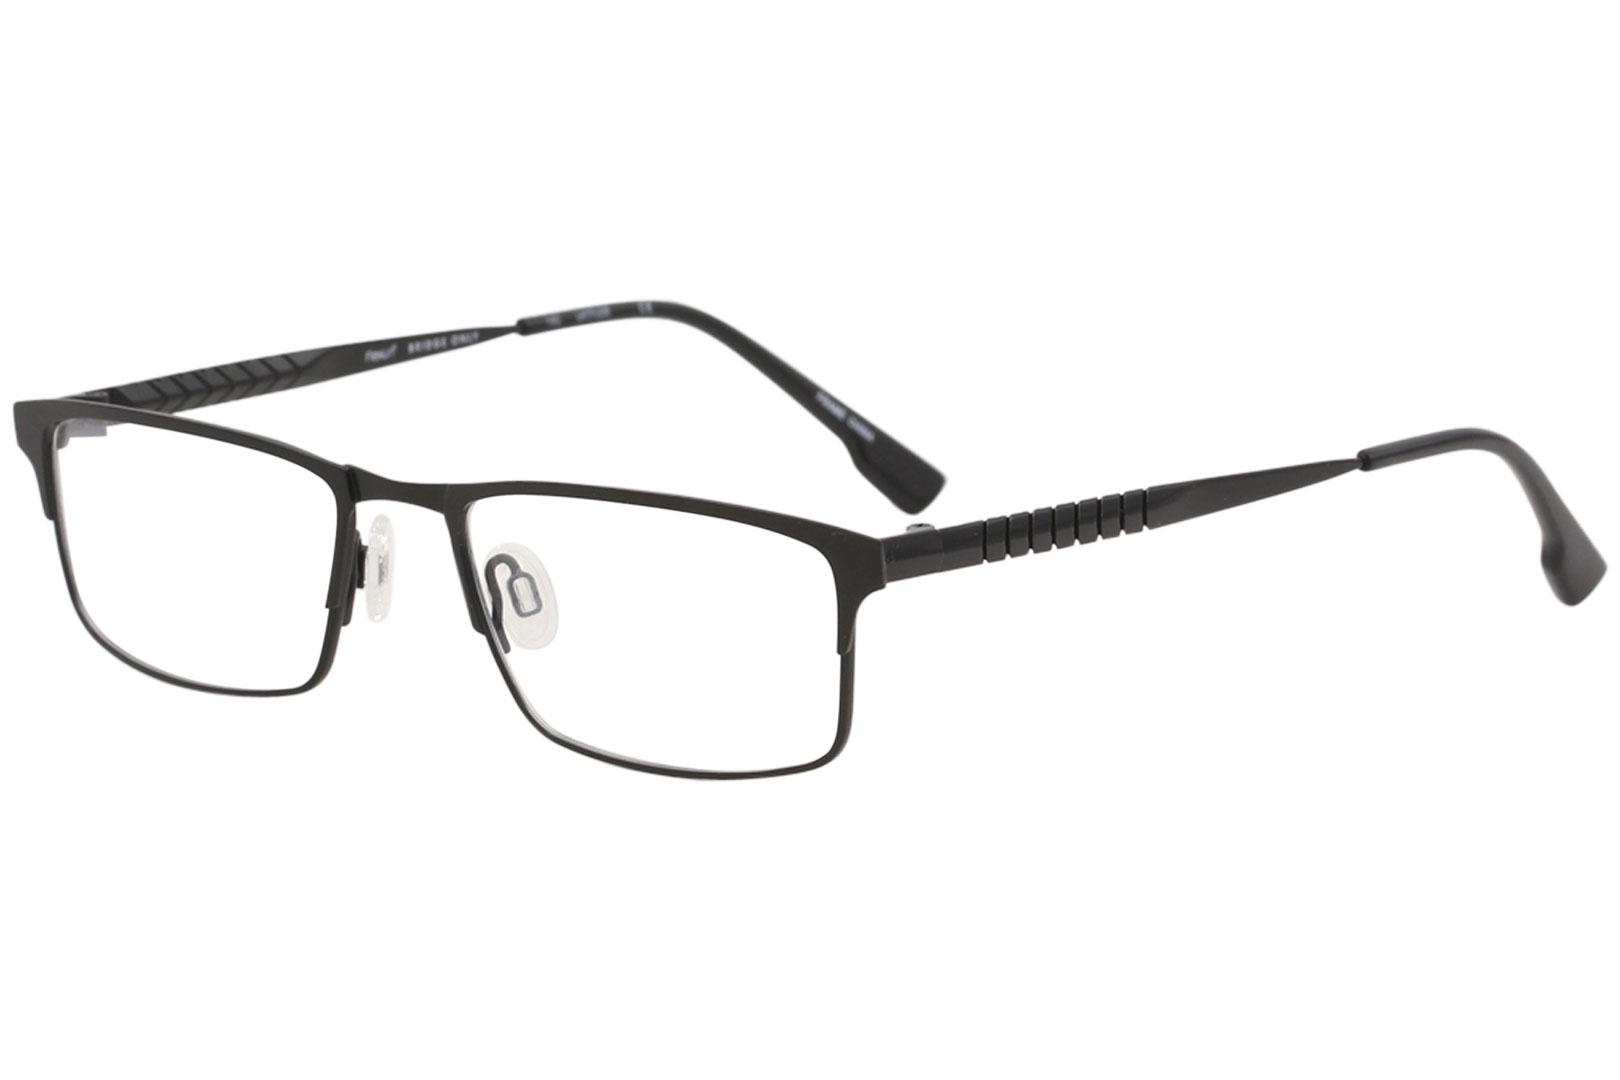 Image of Flexon Eyeglasses E1010 E/1010 001 Black Chrome Full Rim Optical Frame 53mm - Black Chrome   001 - Lens 53 Bridge 18 Temple 140mm